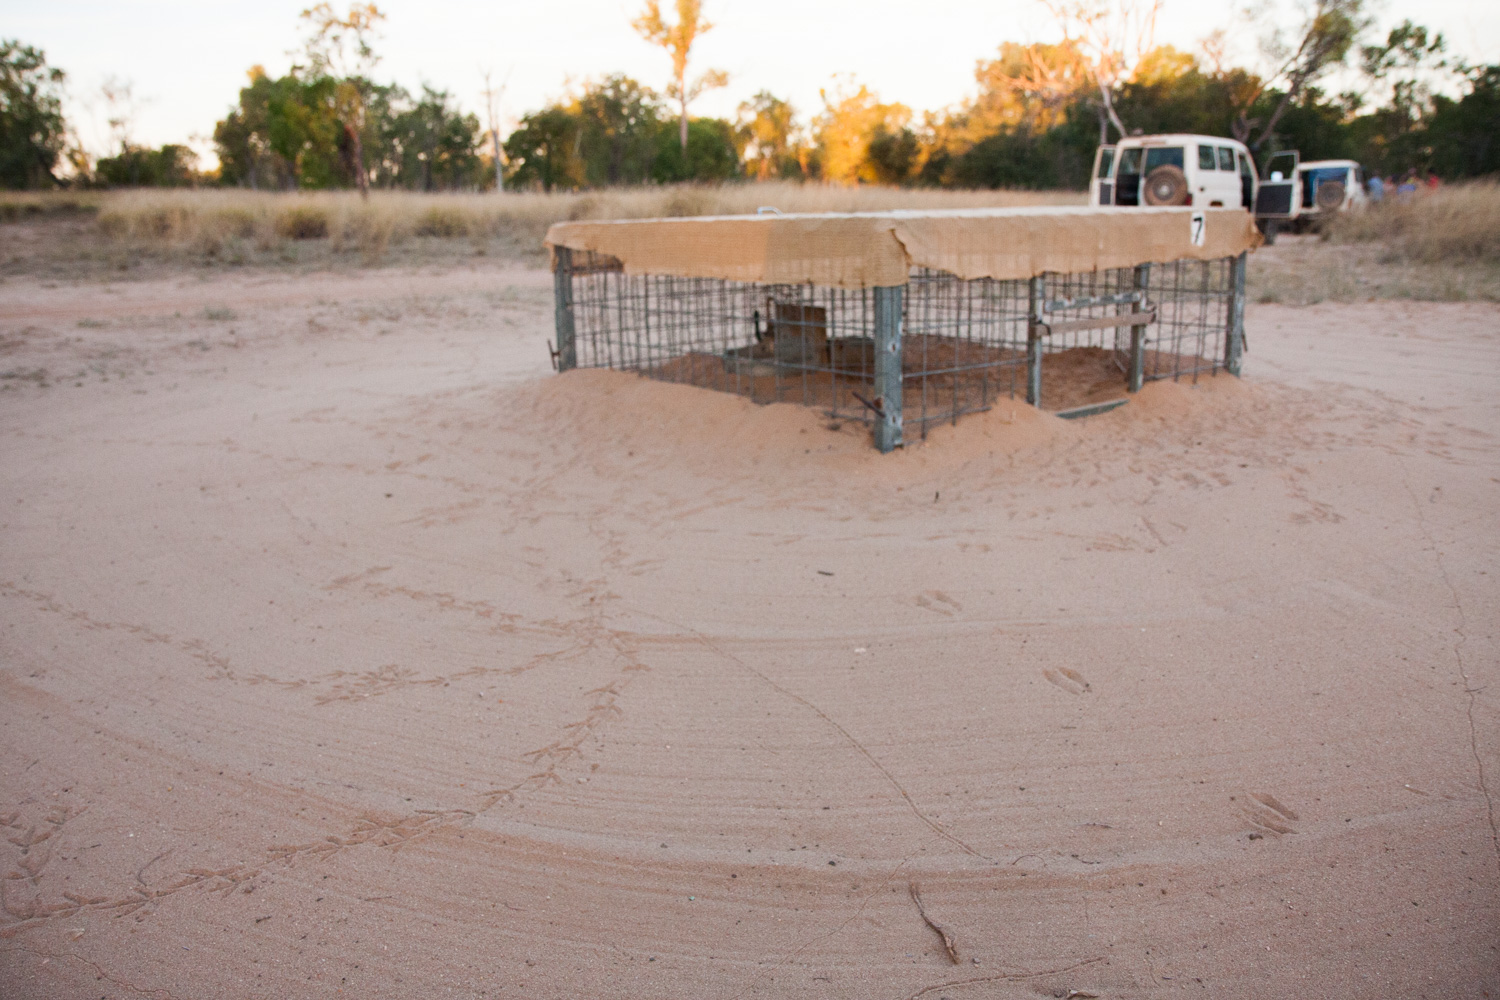 Water and feed stations are set up for the wombats. Clearly other animals enjoy them too.